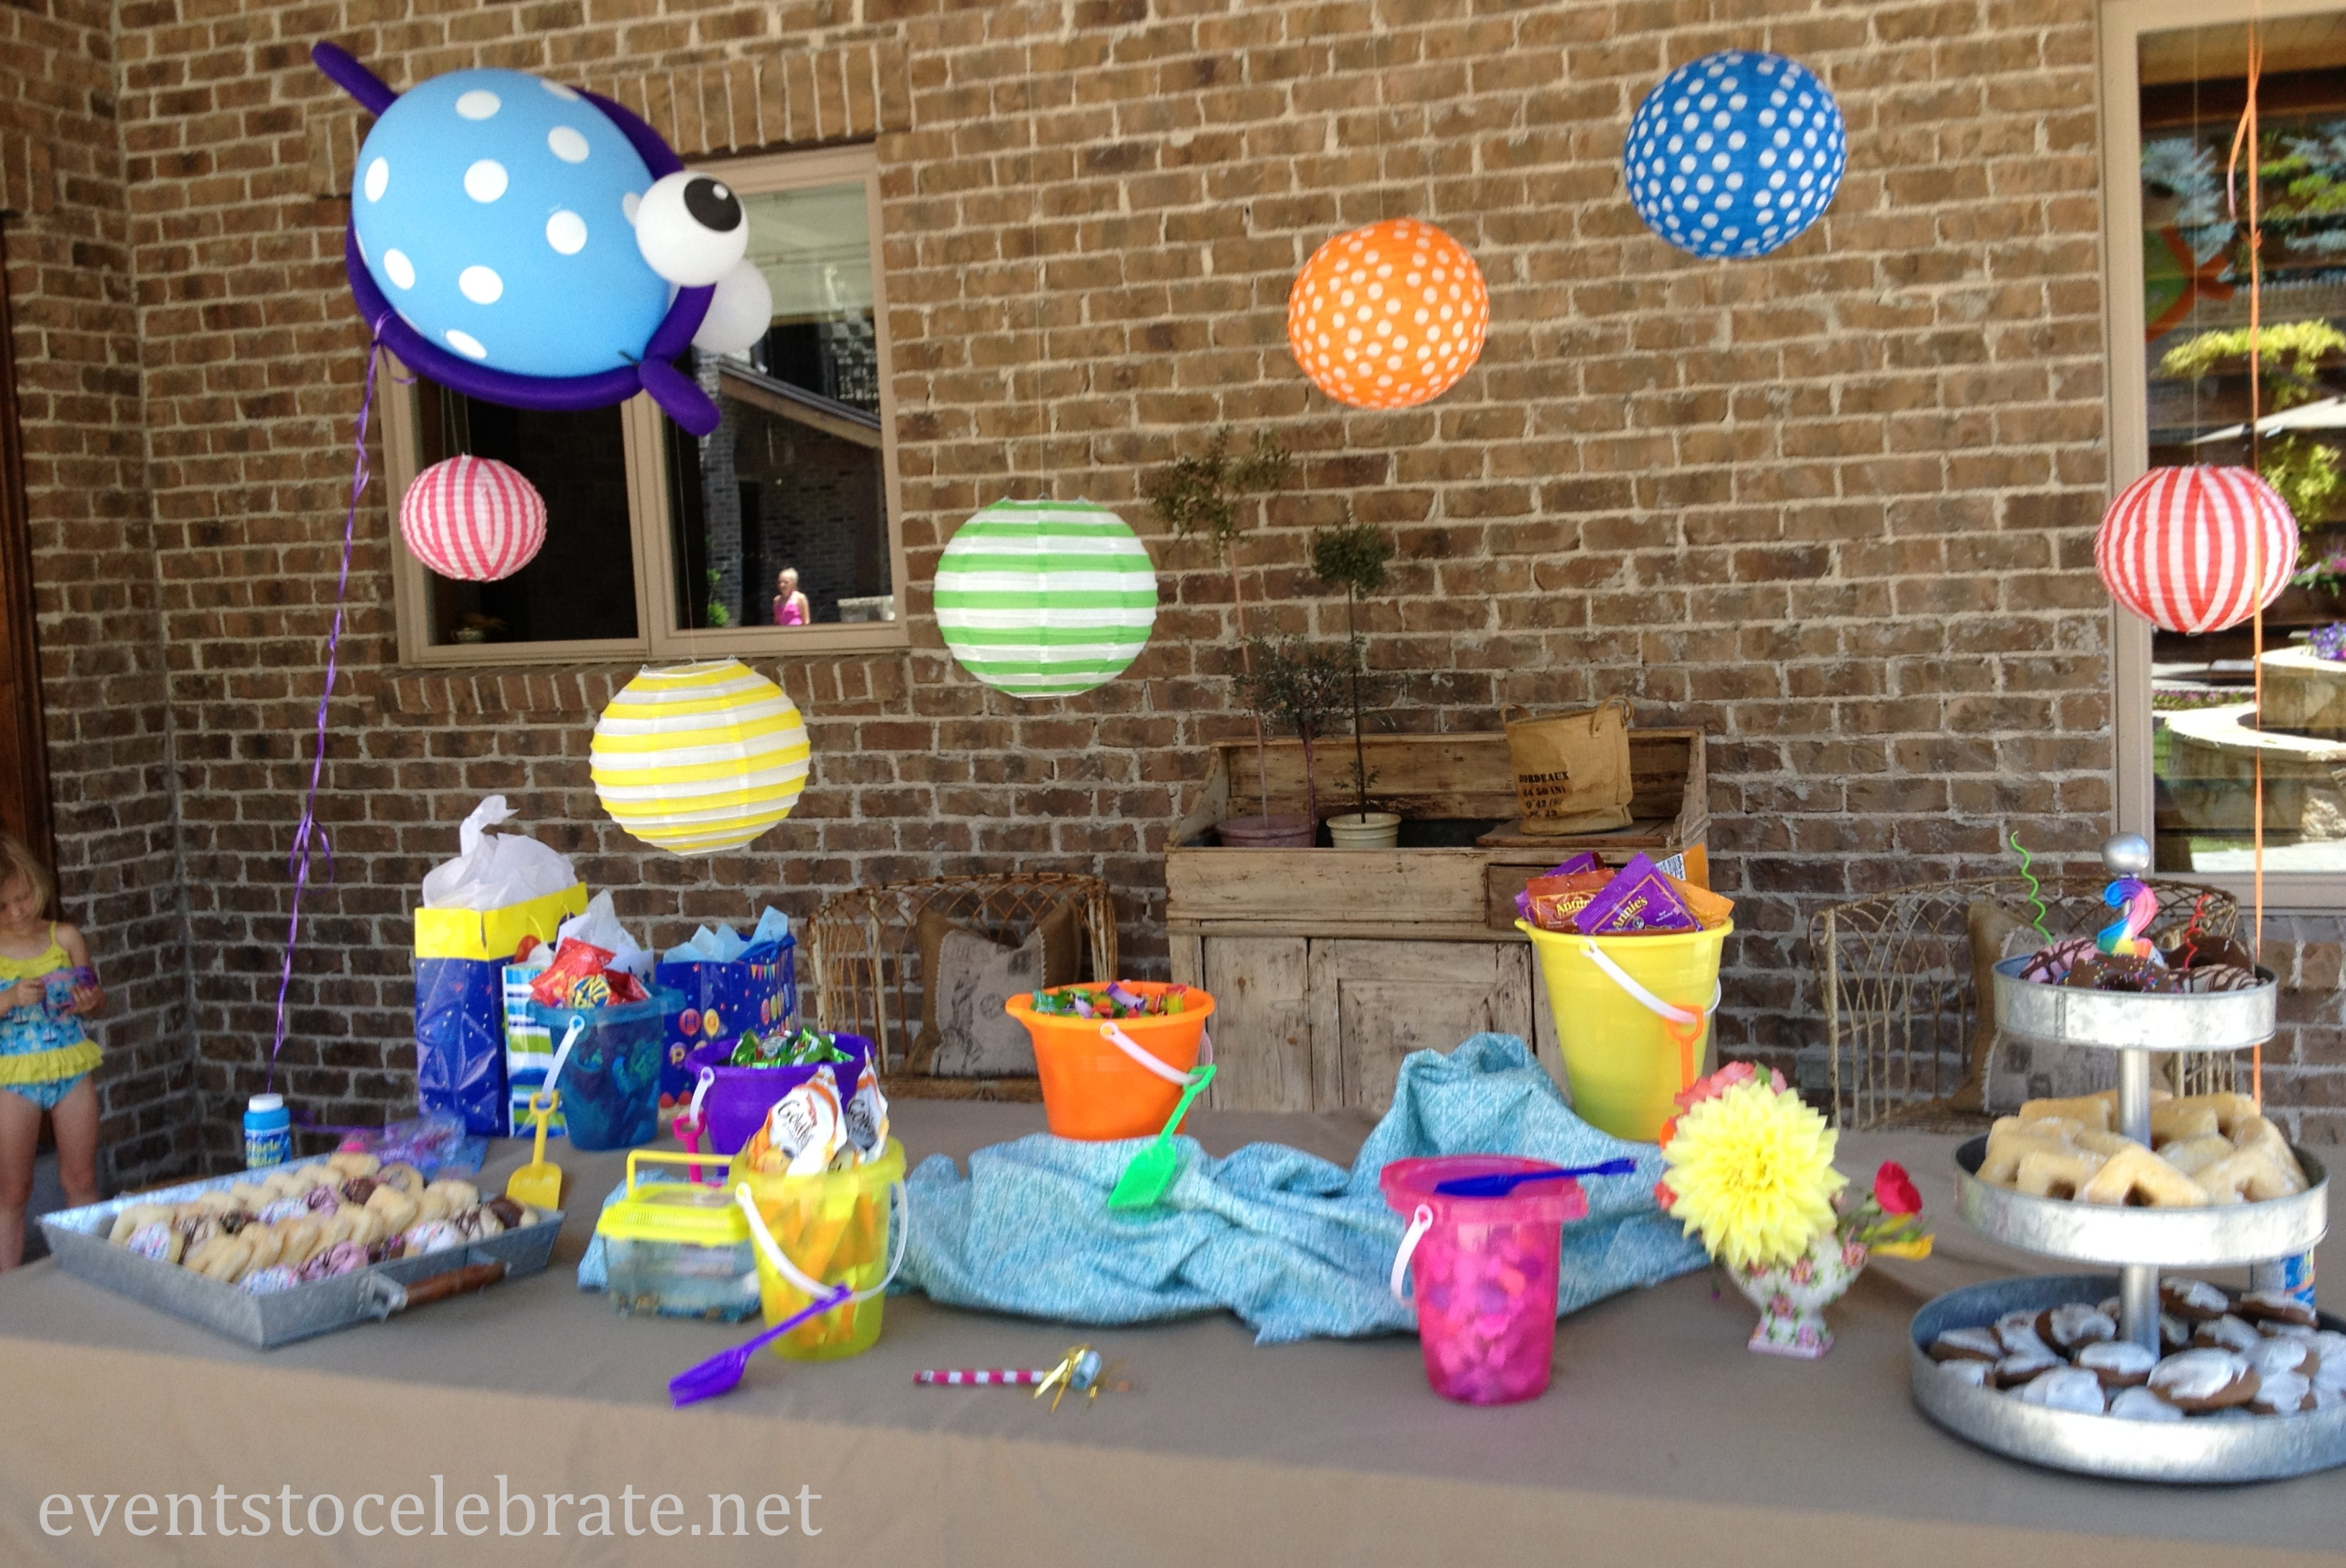 Pool party ideas events to celebrate for Decoration ideas